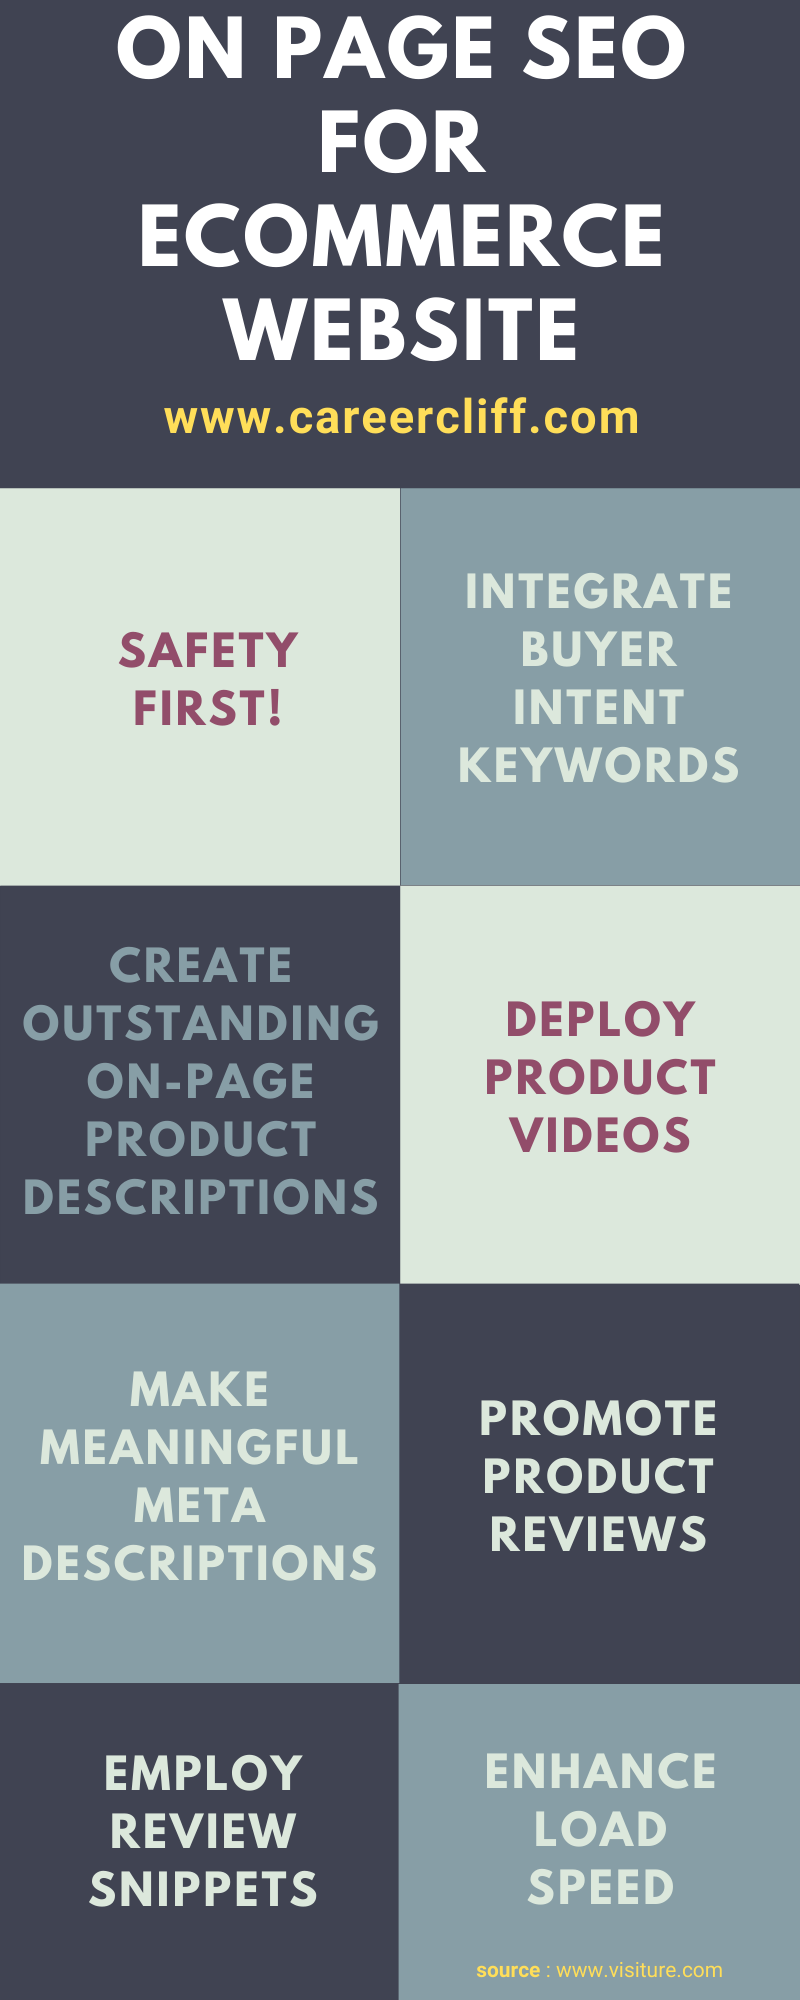 on page seo for ecommerce website